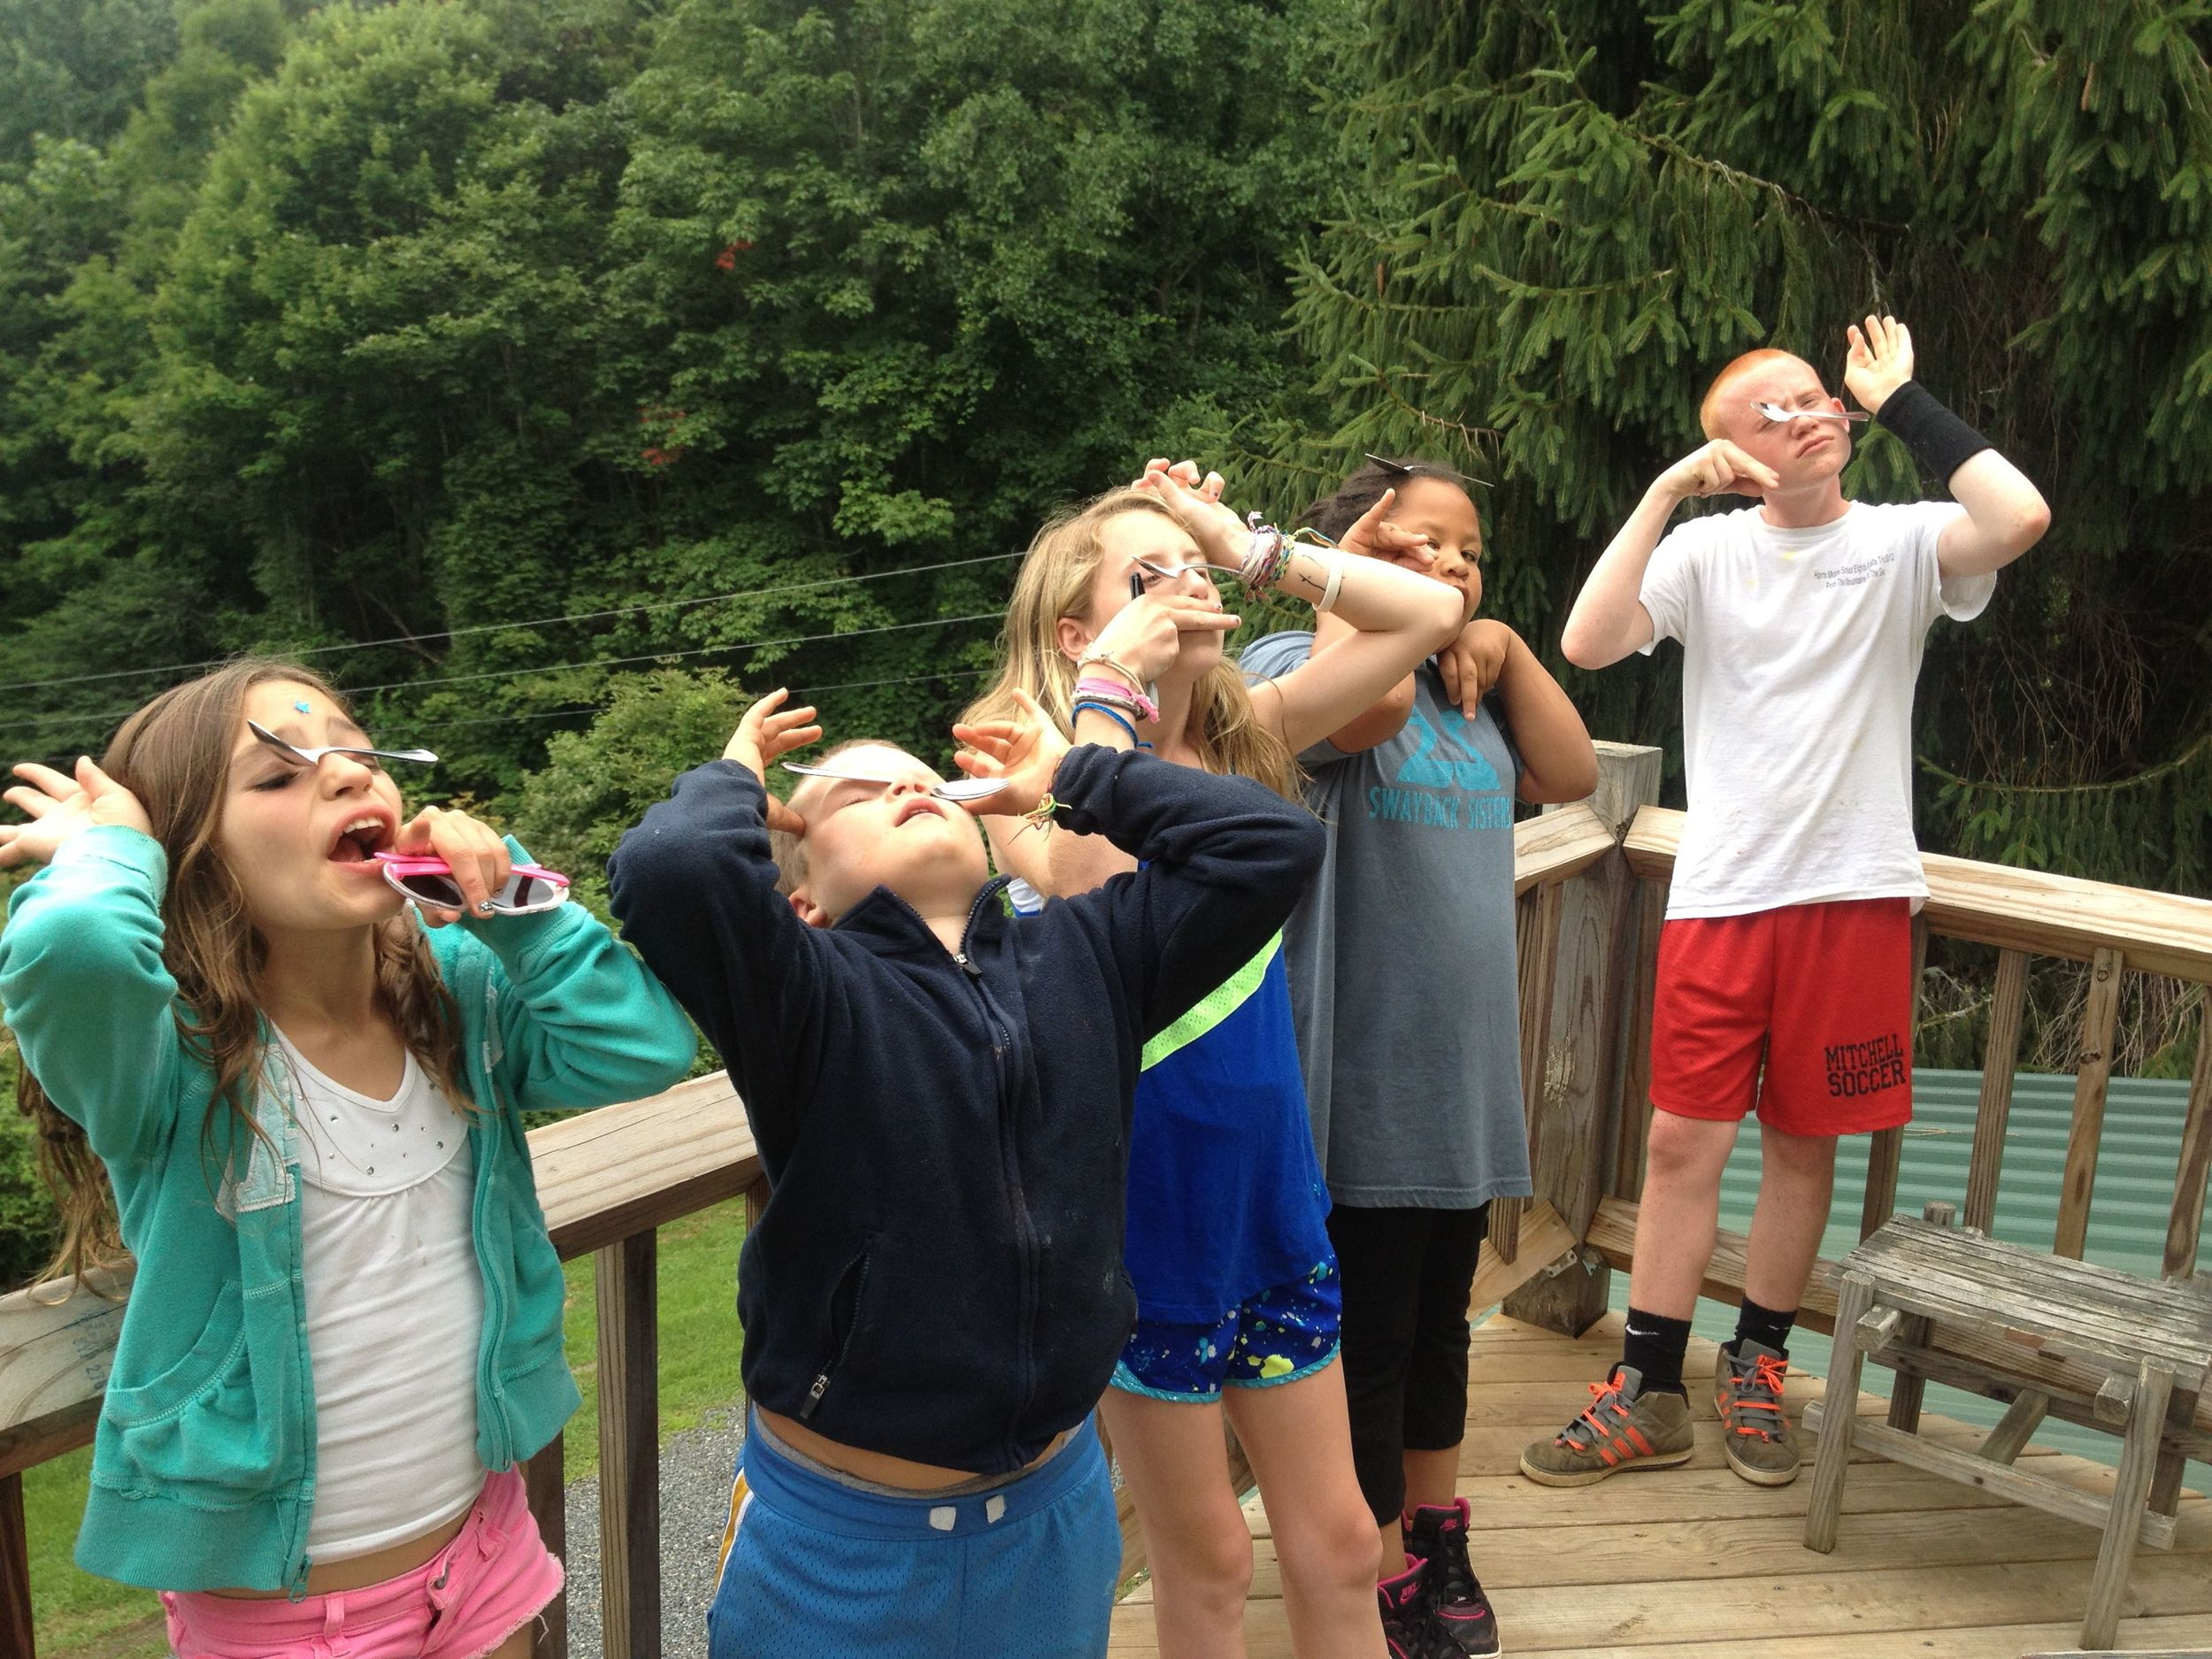 bella-tommy-emily-regianna-and-olson-are-so-talented-balancing-spoons-on-their-nose-while-making-the-22tommy-face.jpg